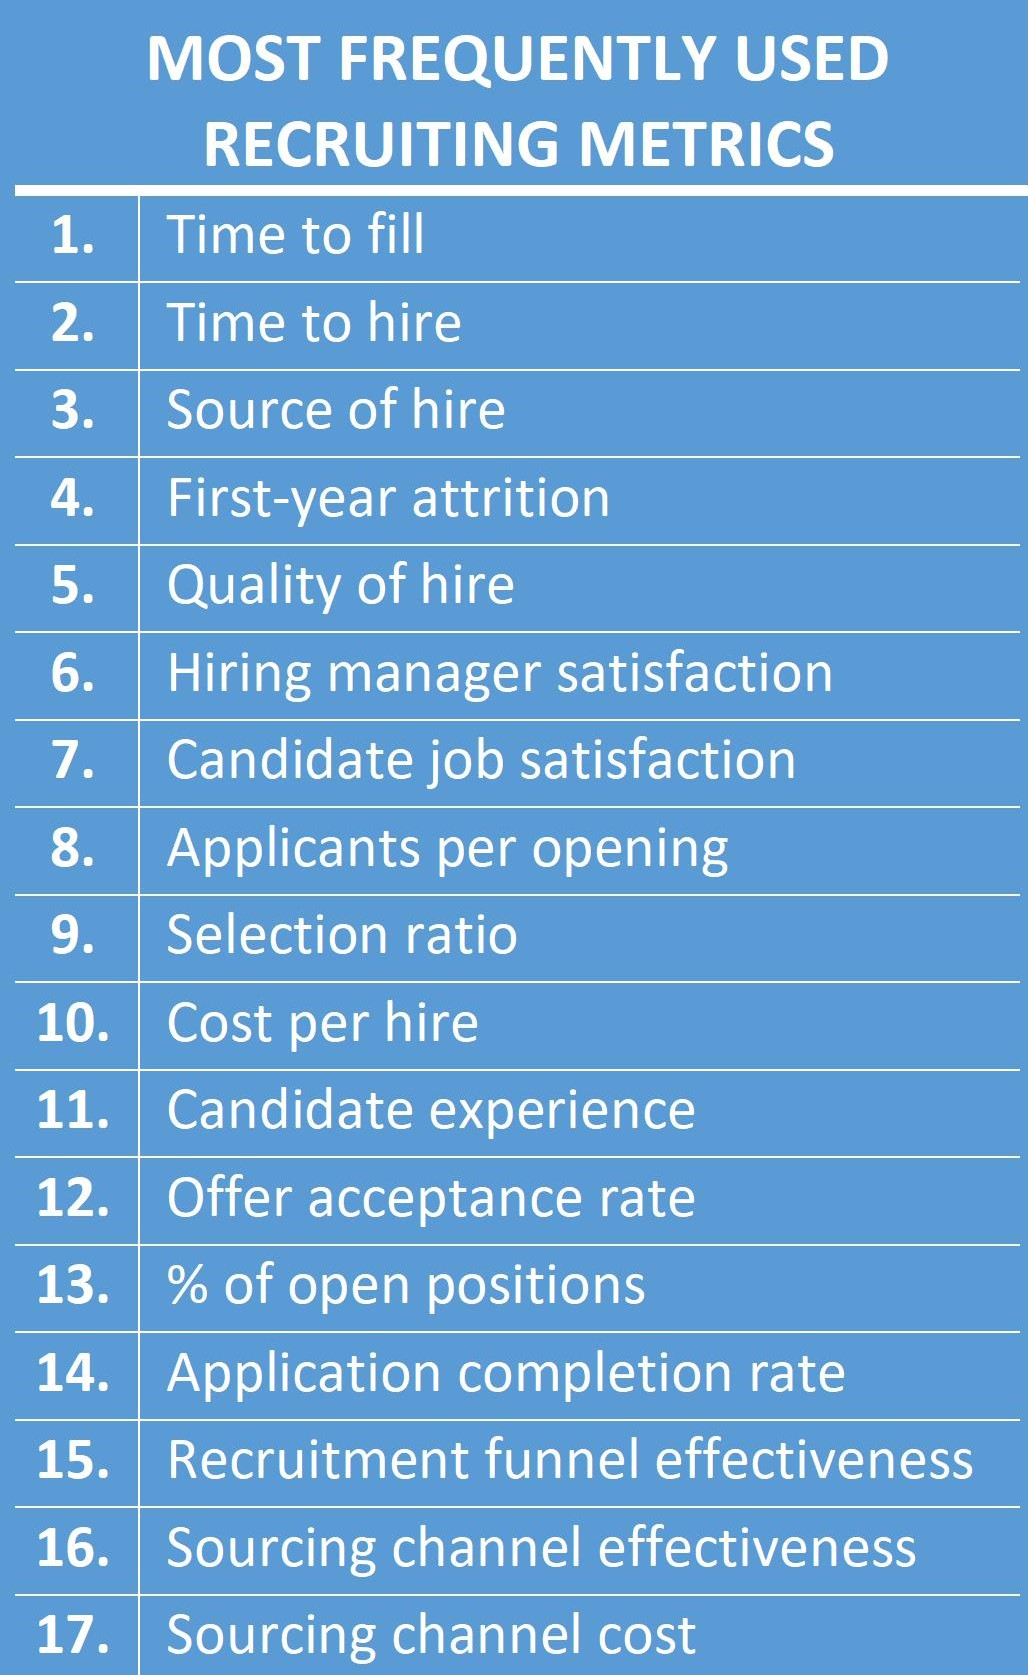 Recruiting Metrics Spreadsheet For 17 Recruiting Metrics You Should Know About  Analytics In Hr